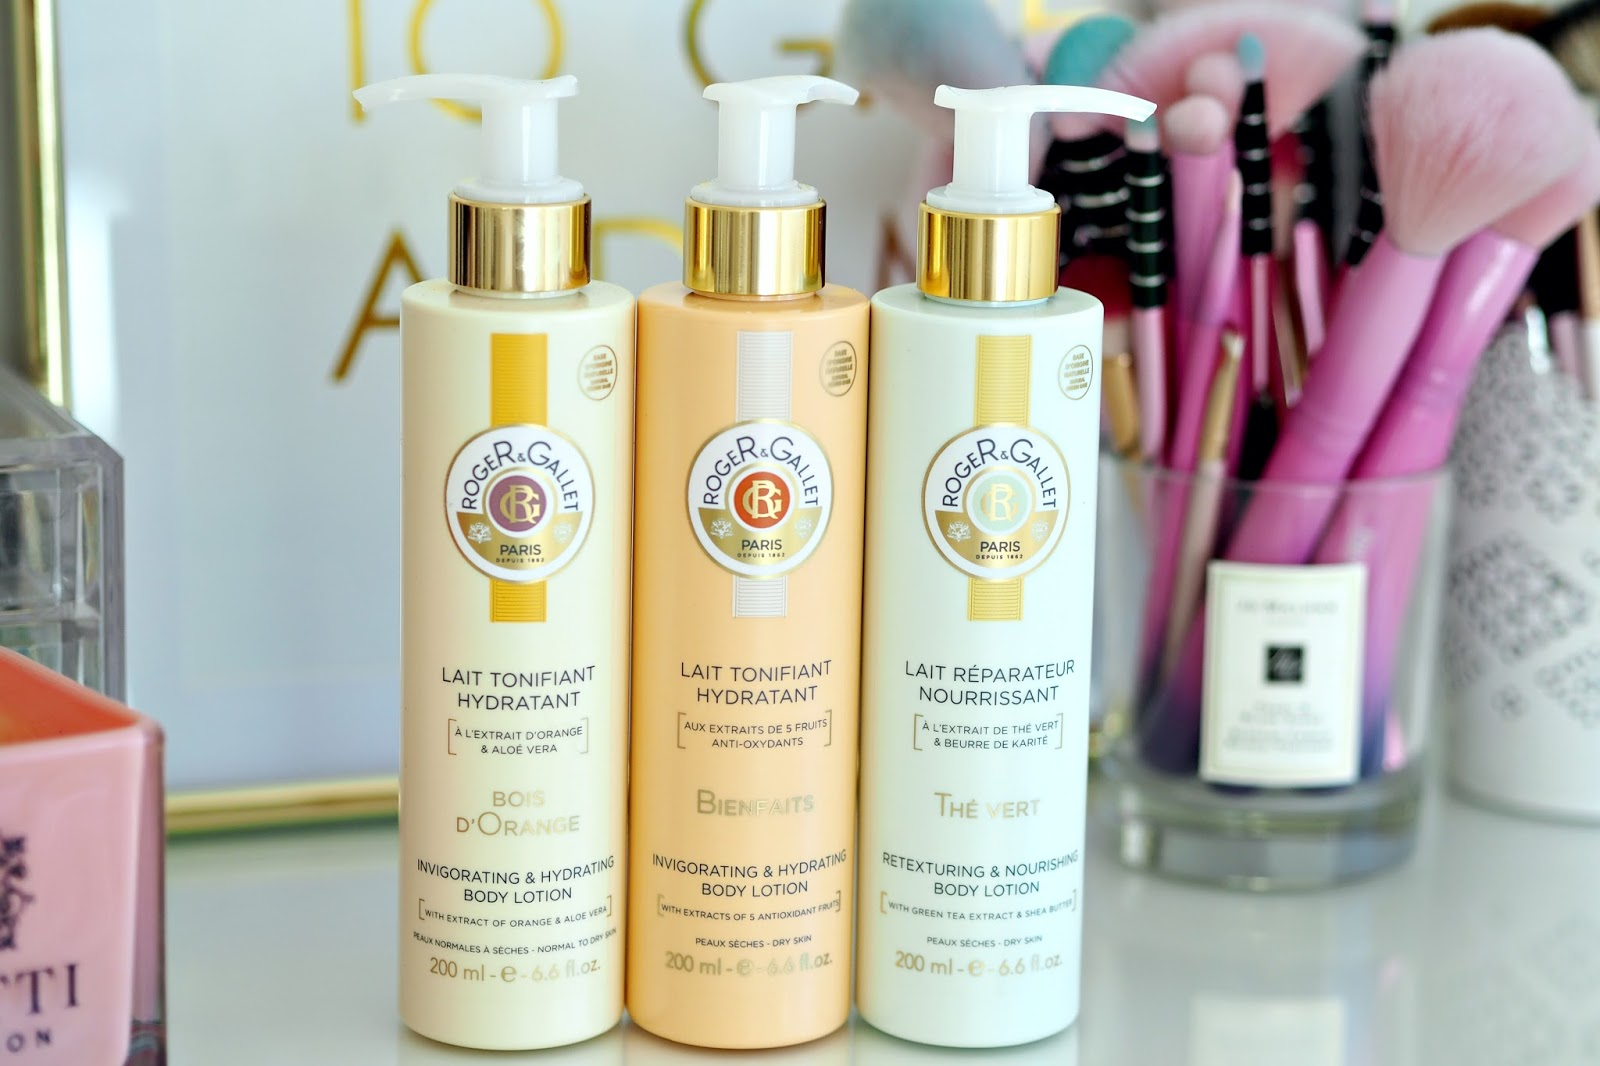 Roger & Gallet Body Lotions